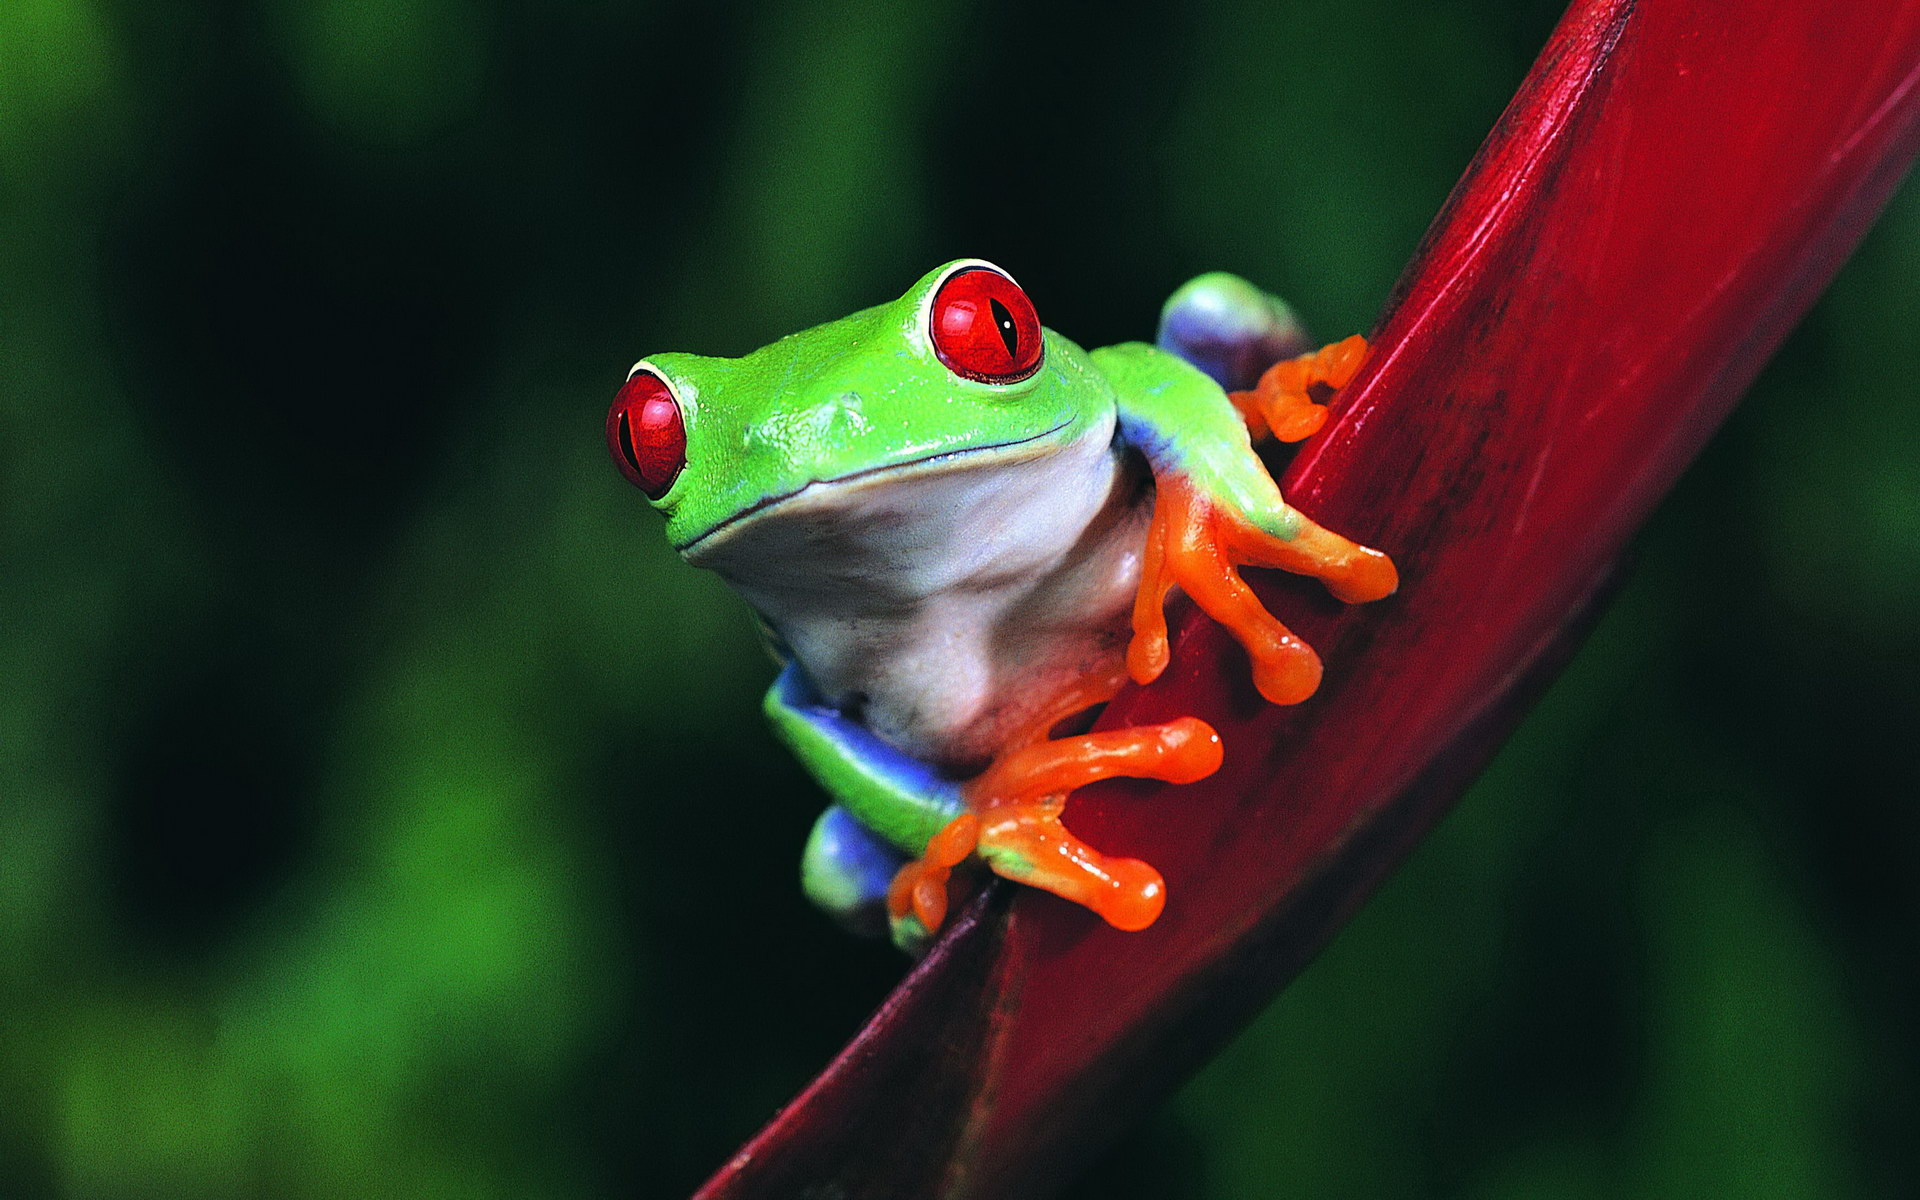 Red Eyed Tree Frog Full HD Wallpaper and Background Image ...